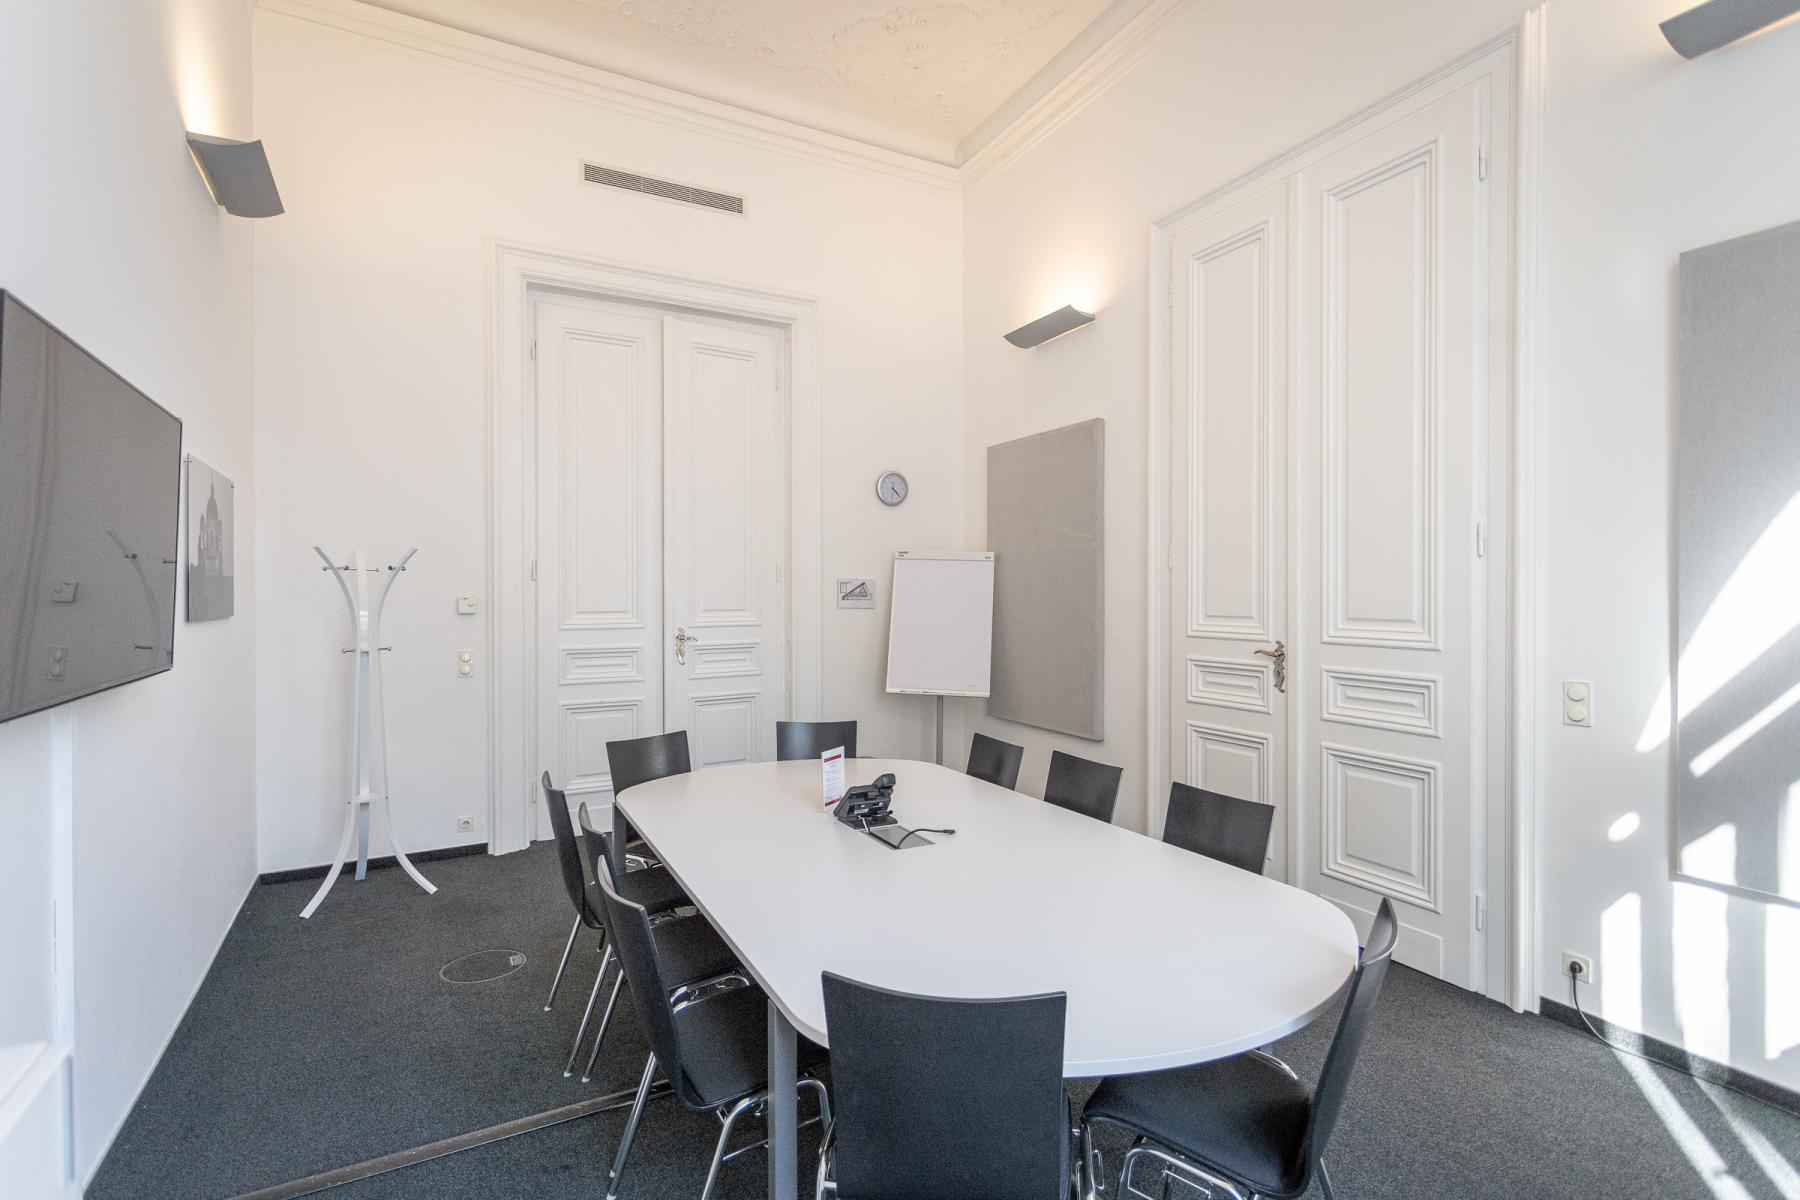 Stucco and the charme of old times - rent your new office in Vienna Innere Stadt